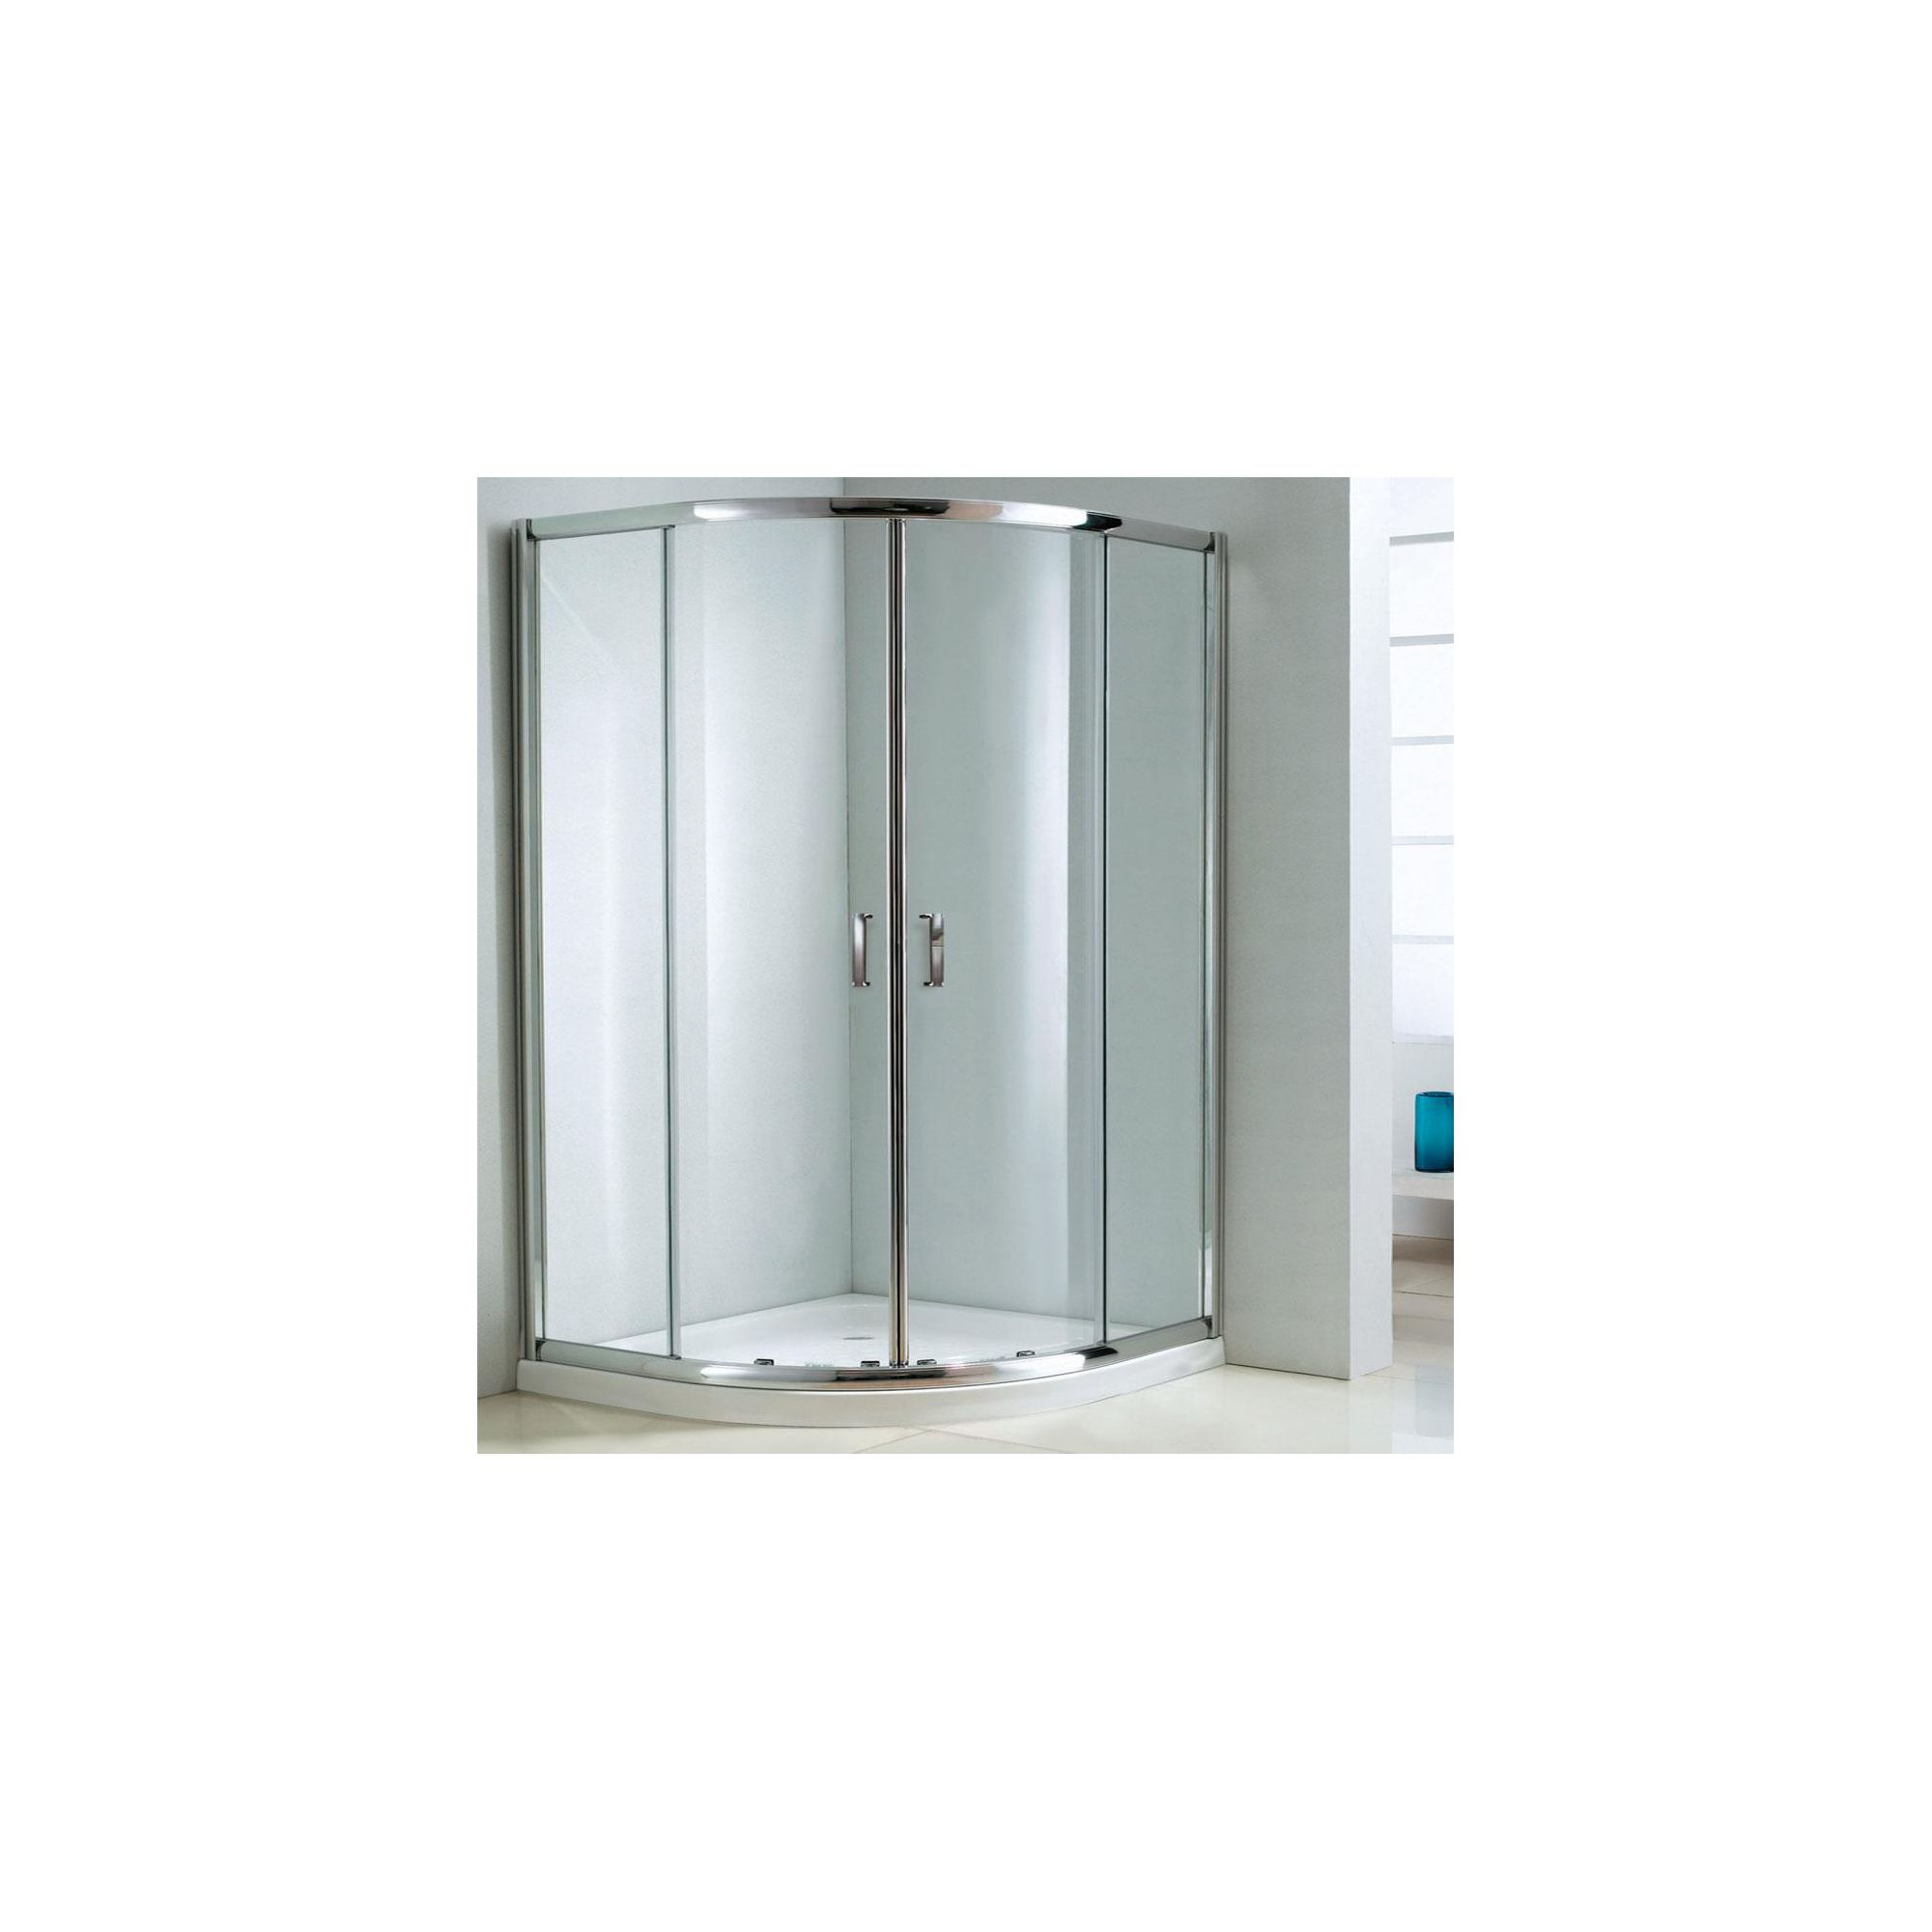 Duchy Style Double Quadrant Door Shower Enclosure, 800mm x 800mm, 6mm Glass, Low Profile Tray at Tesco Direct